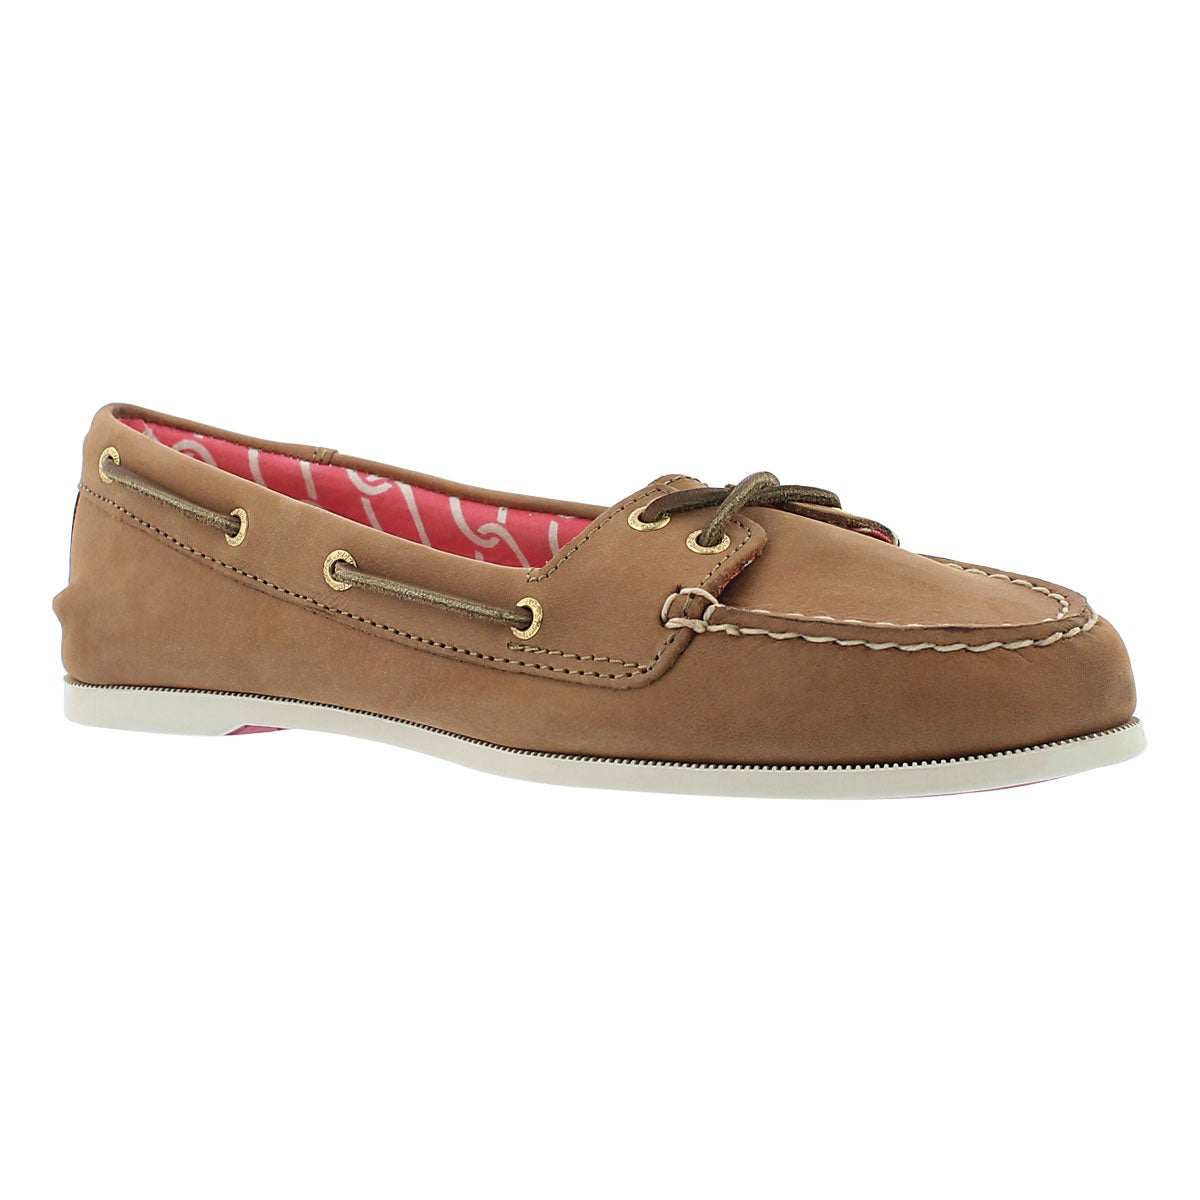 Women's AUDREY desert leather boat shoes